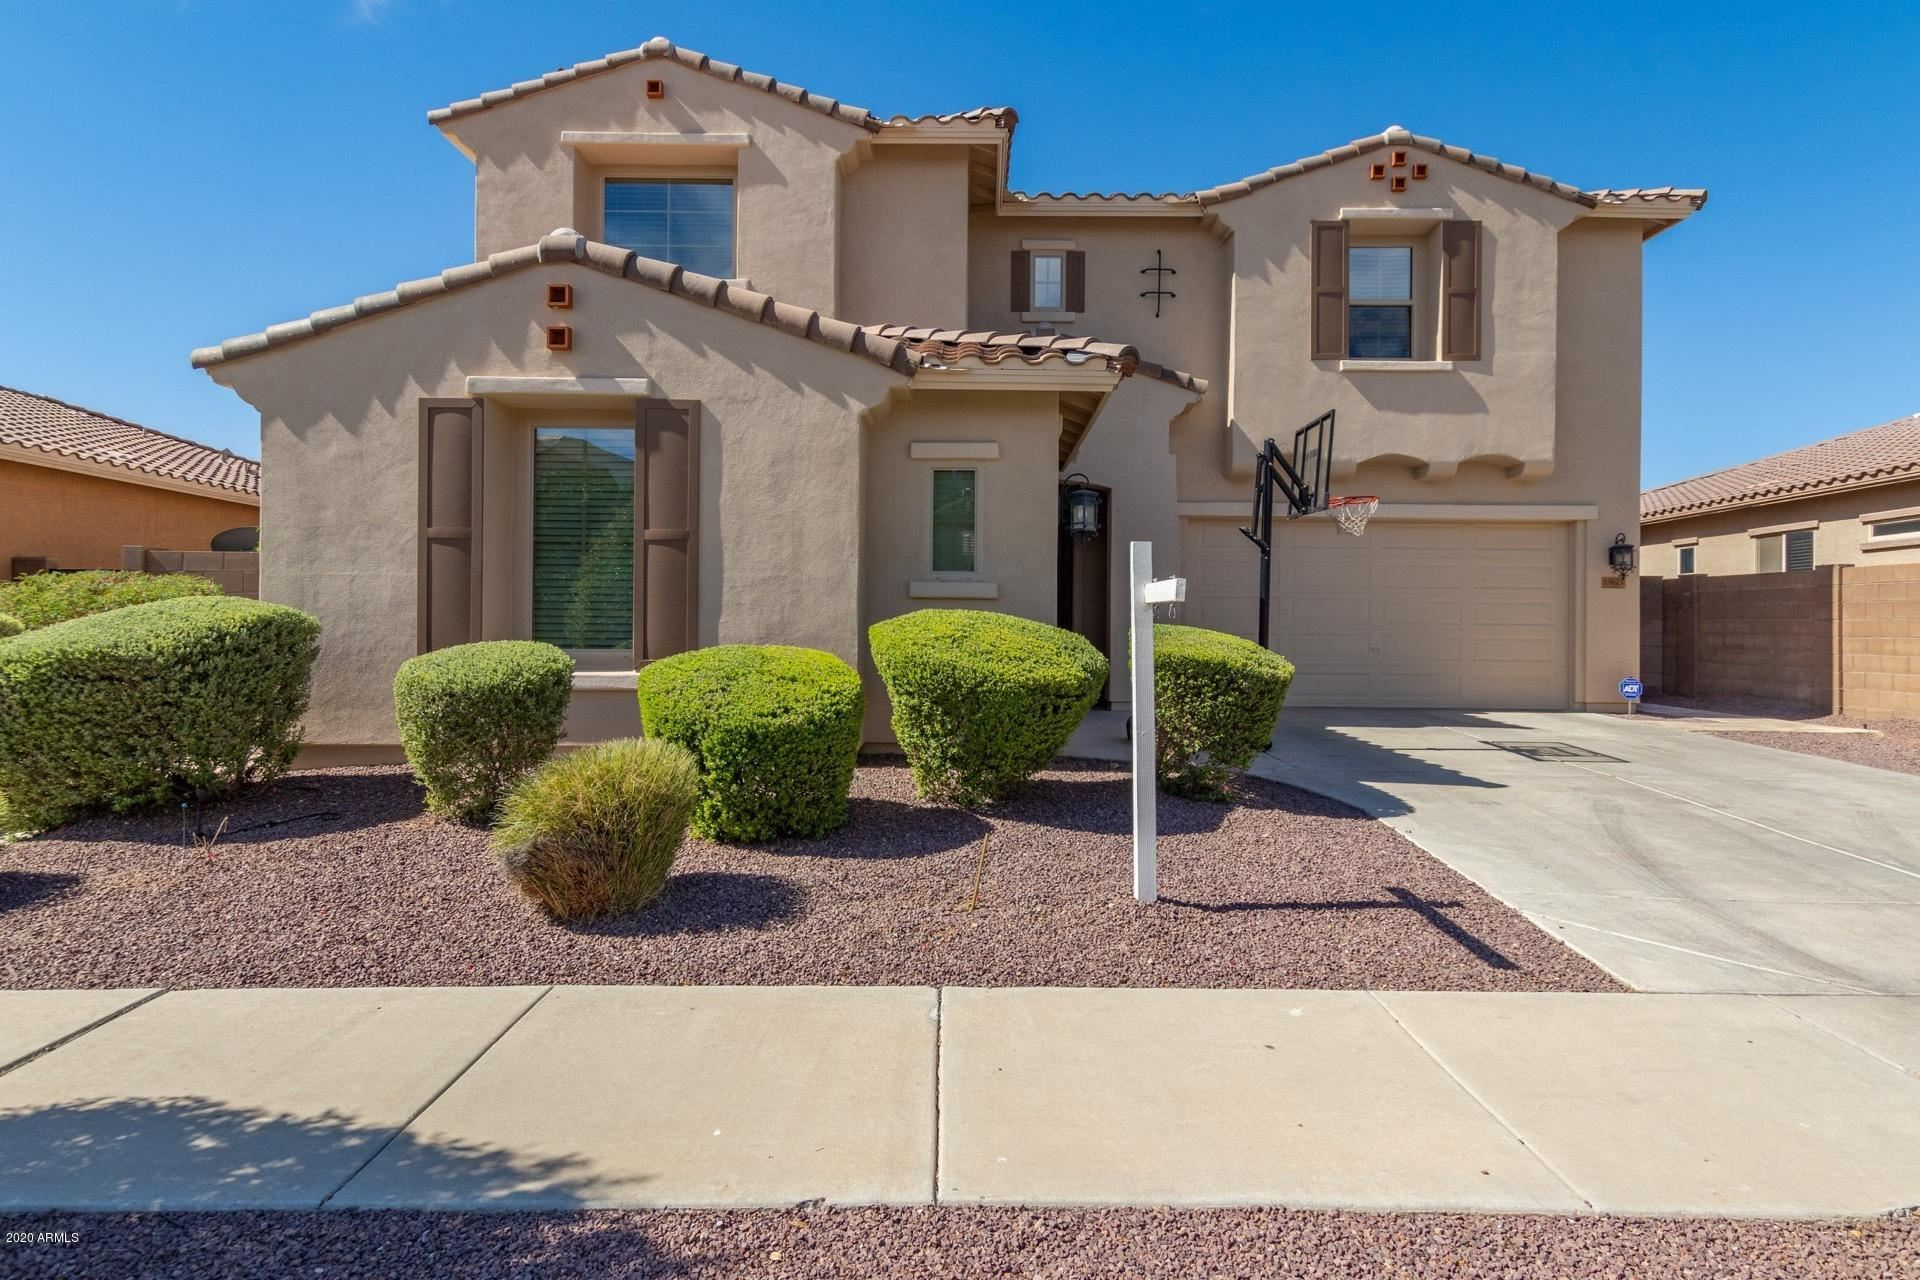 15623 W SIERRA Street, Surprise, AZ 85379 - MLS#: 6095970